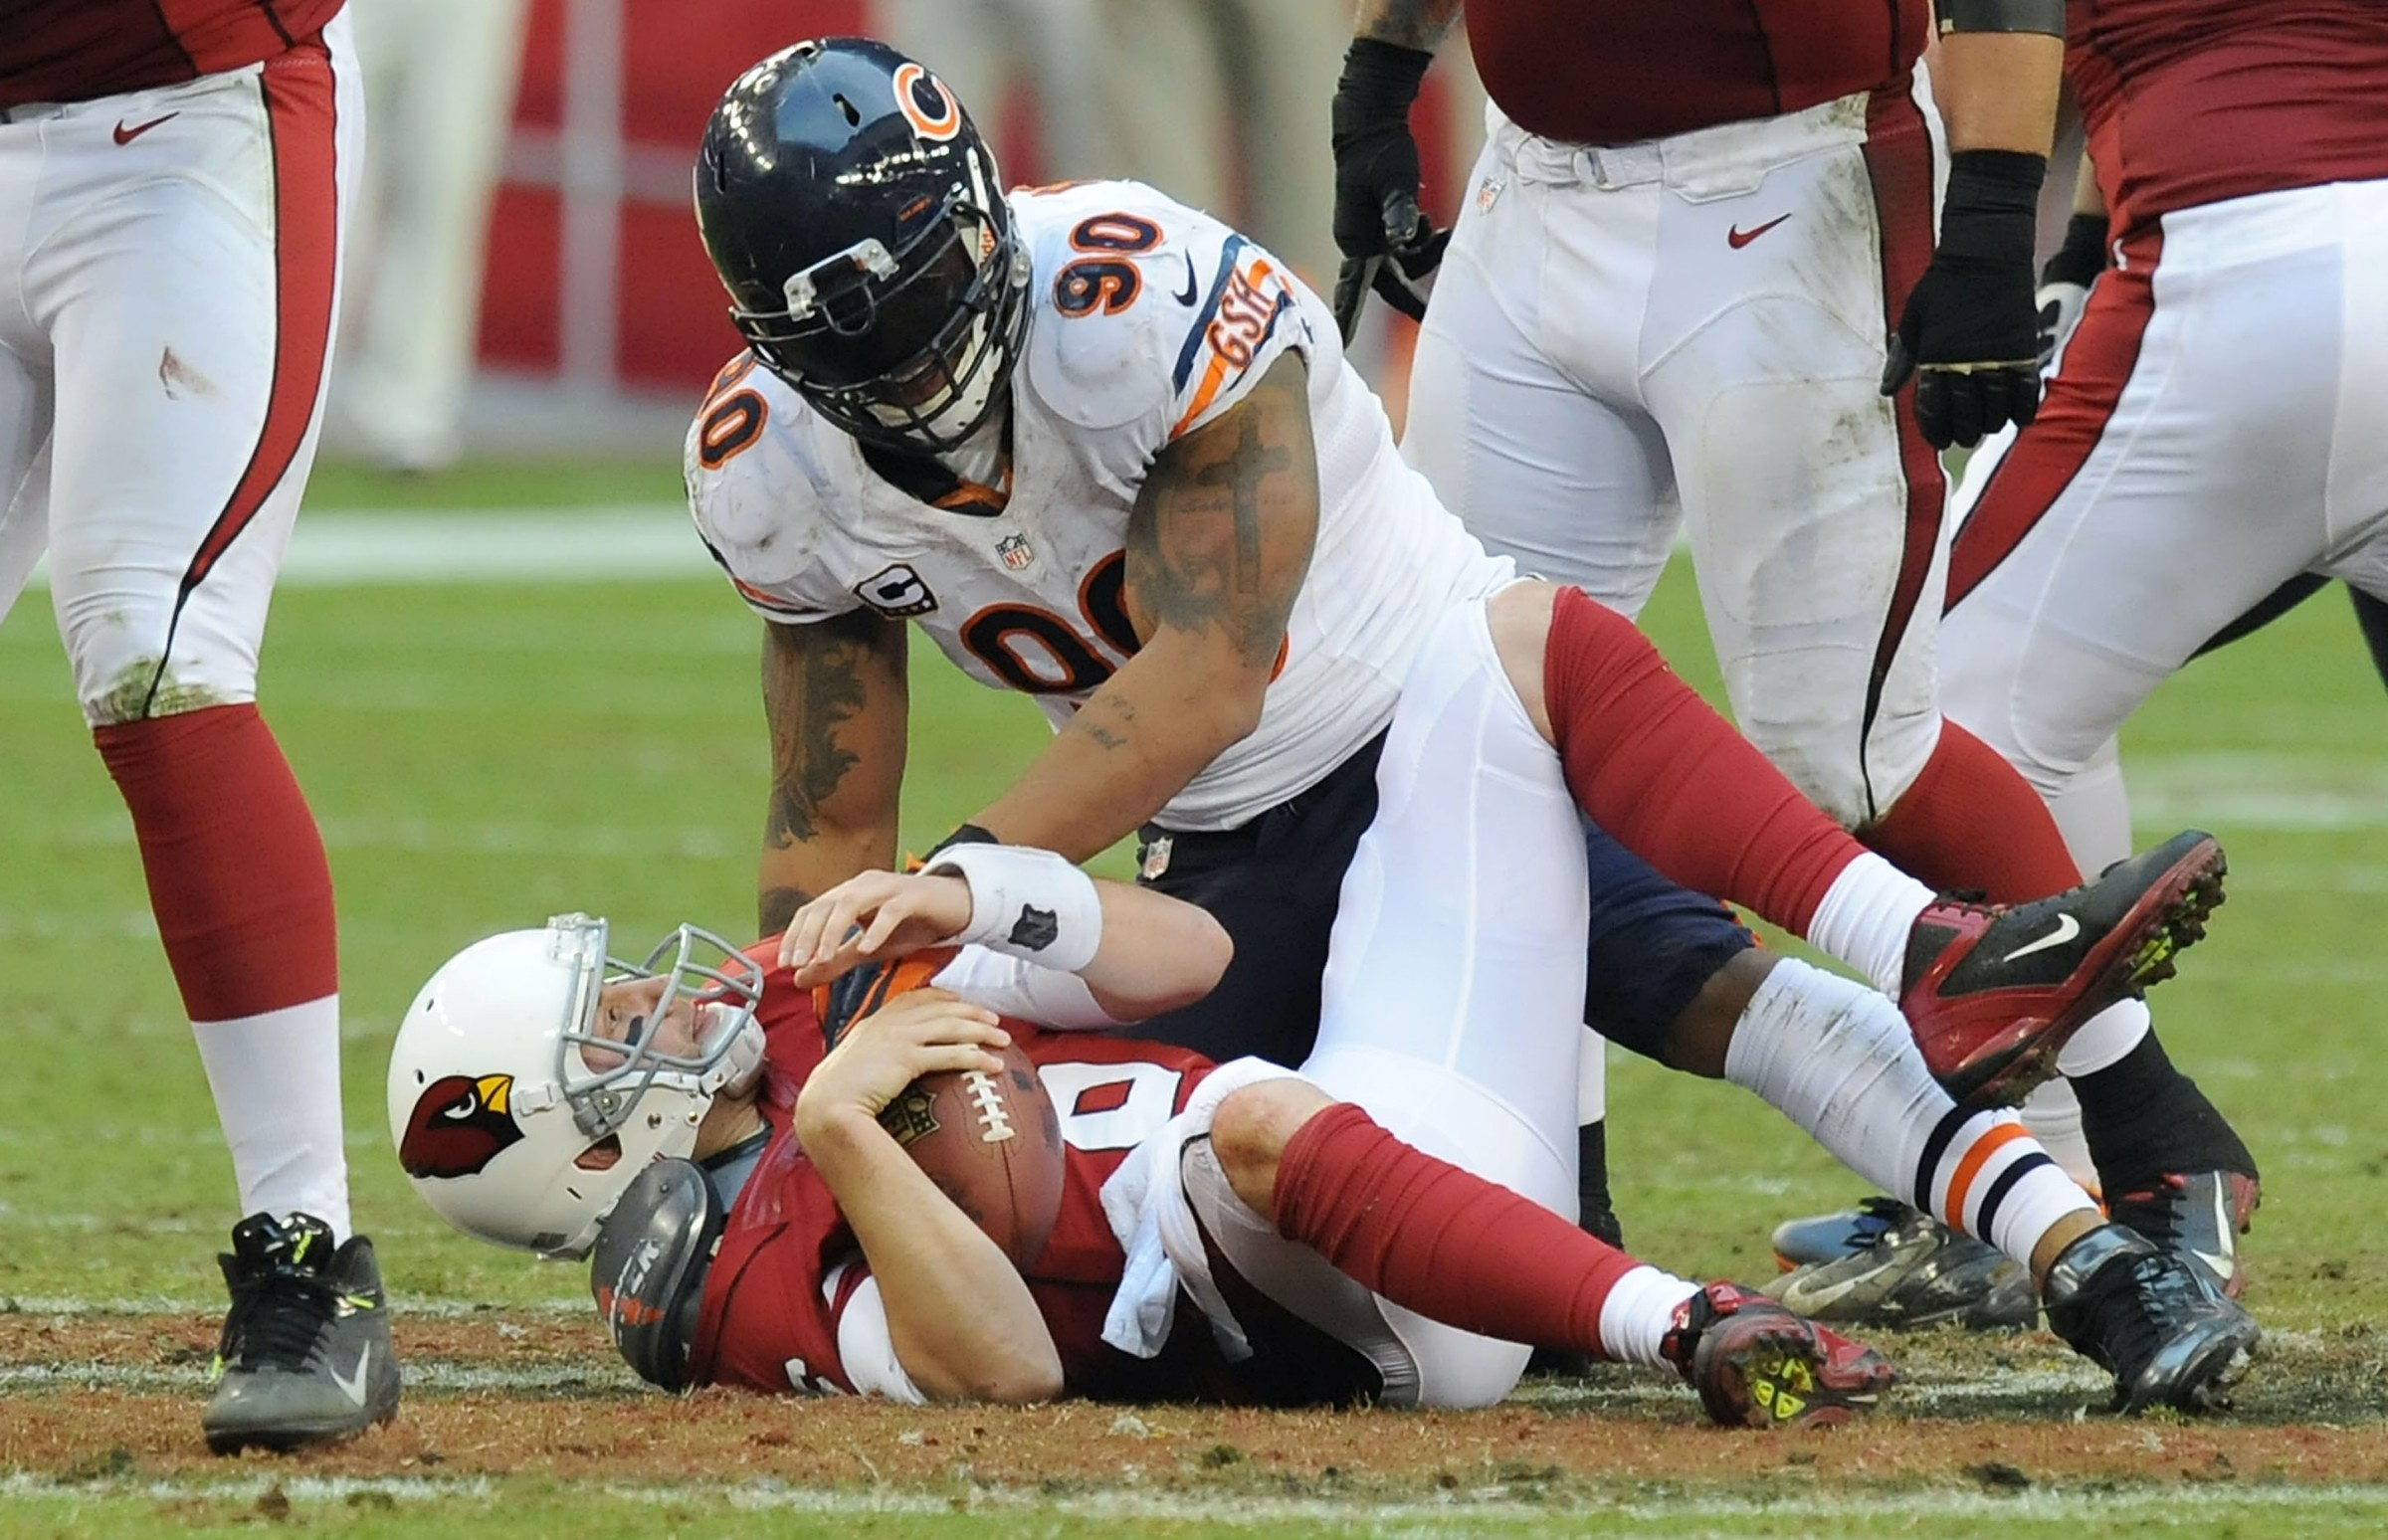 Brian Hoyer gets sacked by Julius Peppers.